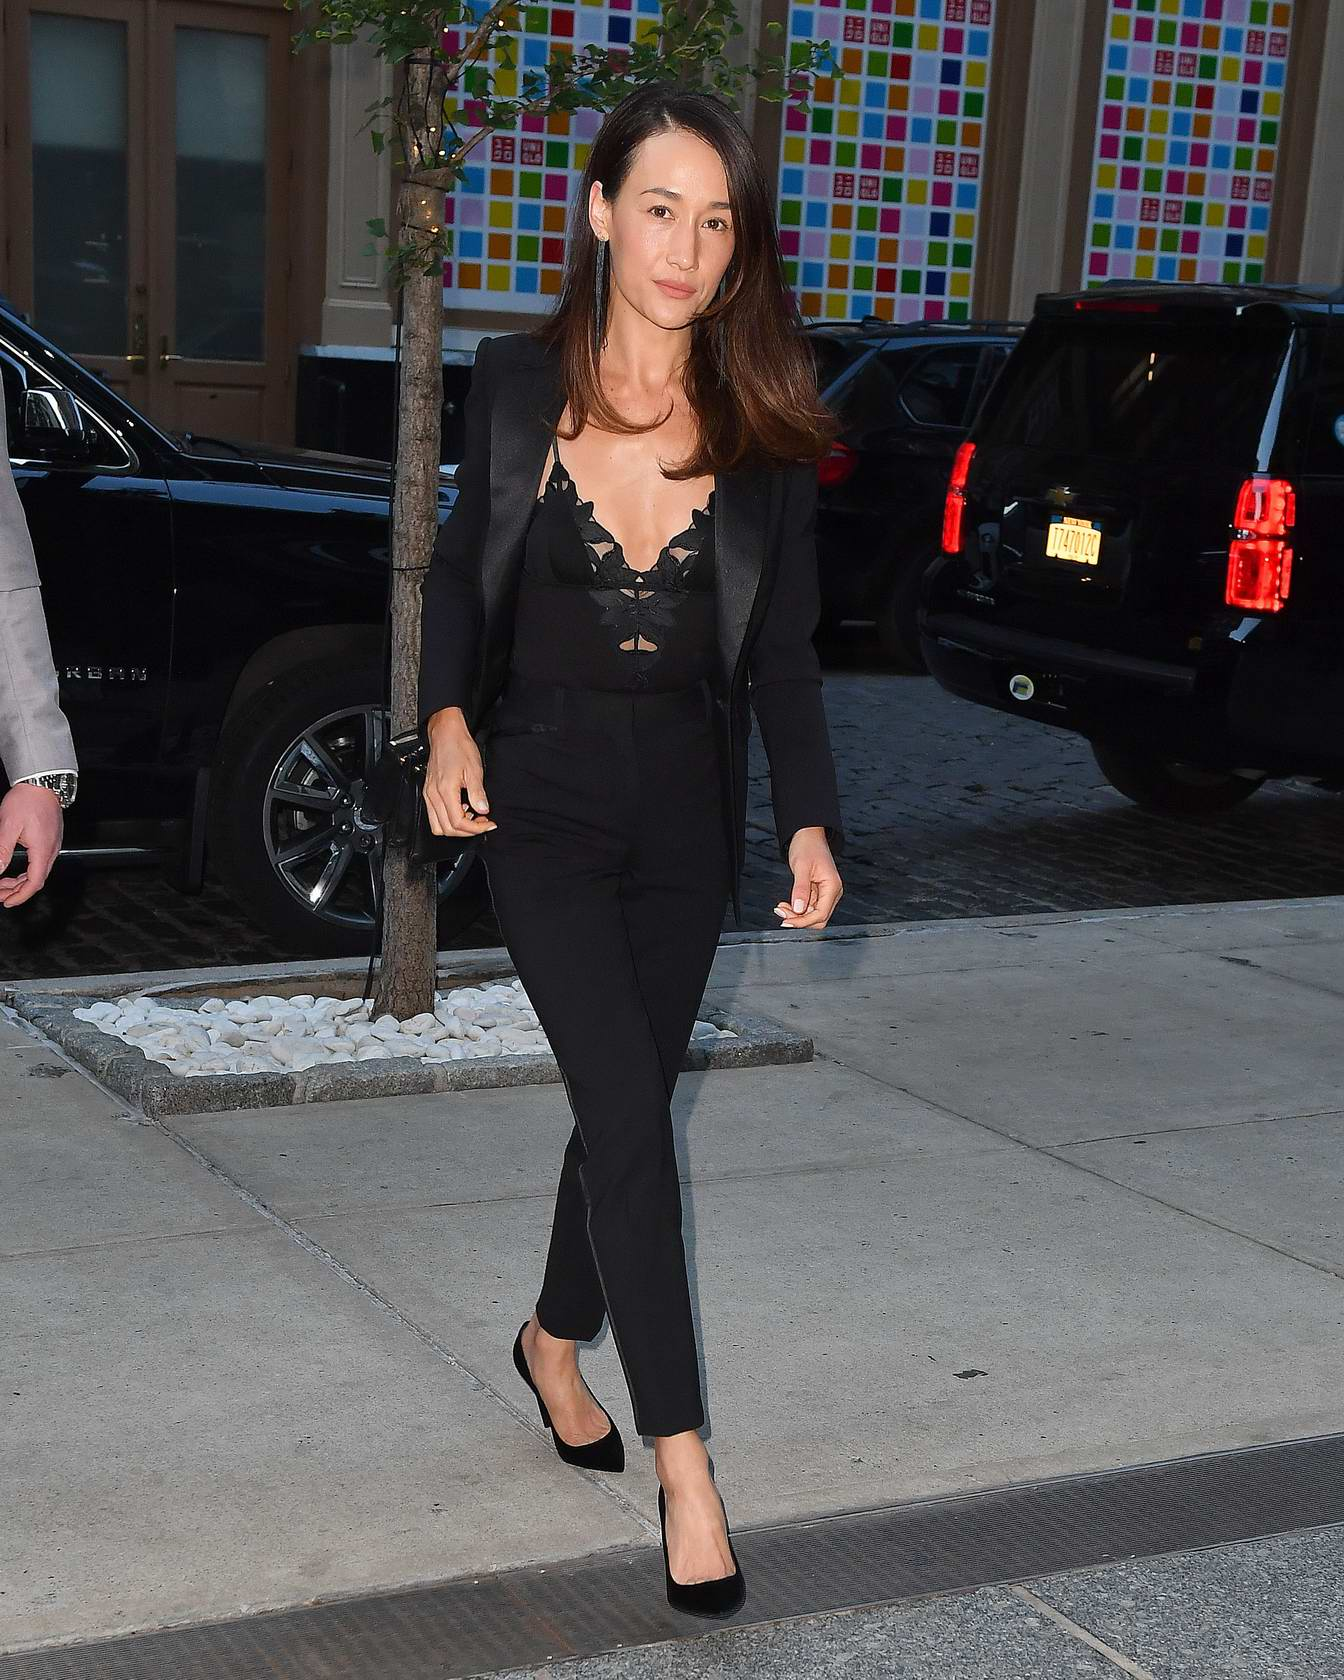 Maggie Q wears all black while out and about in New York City